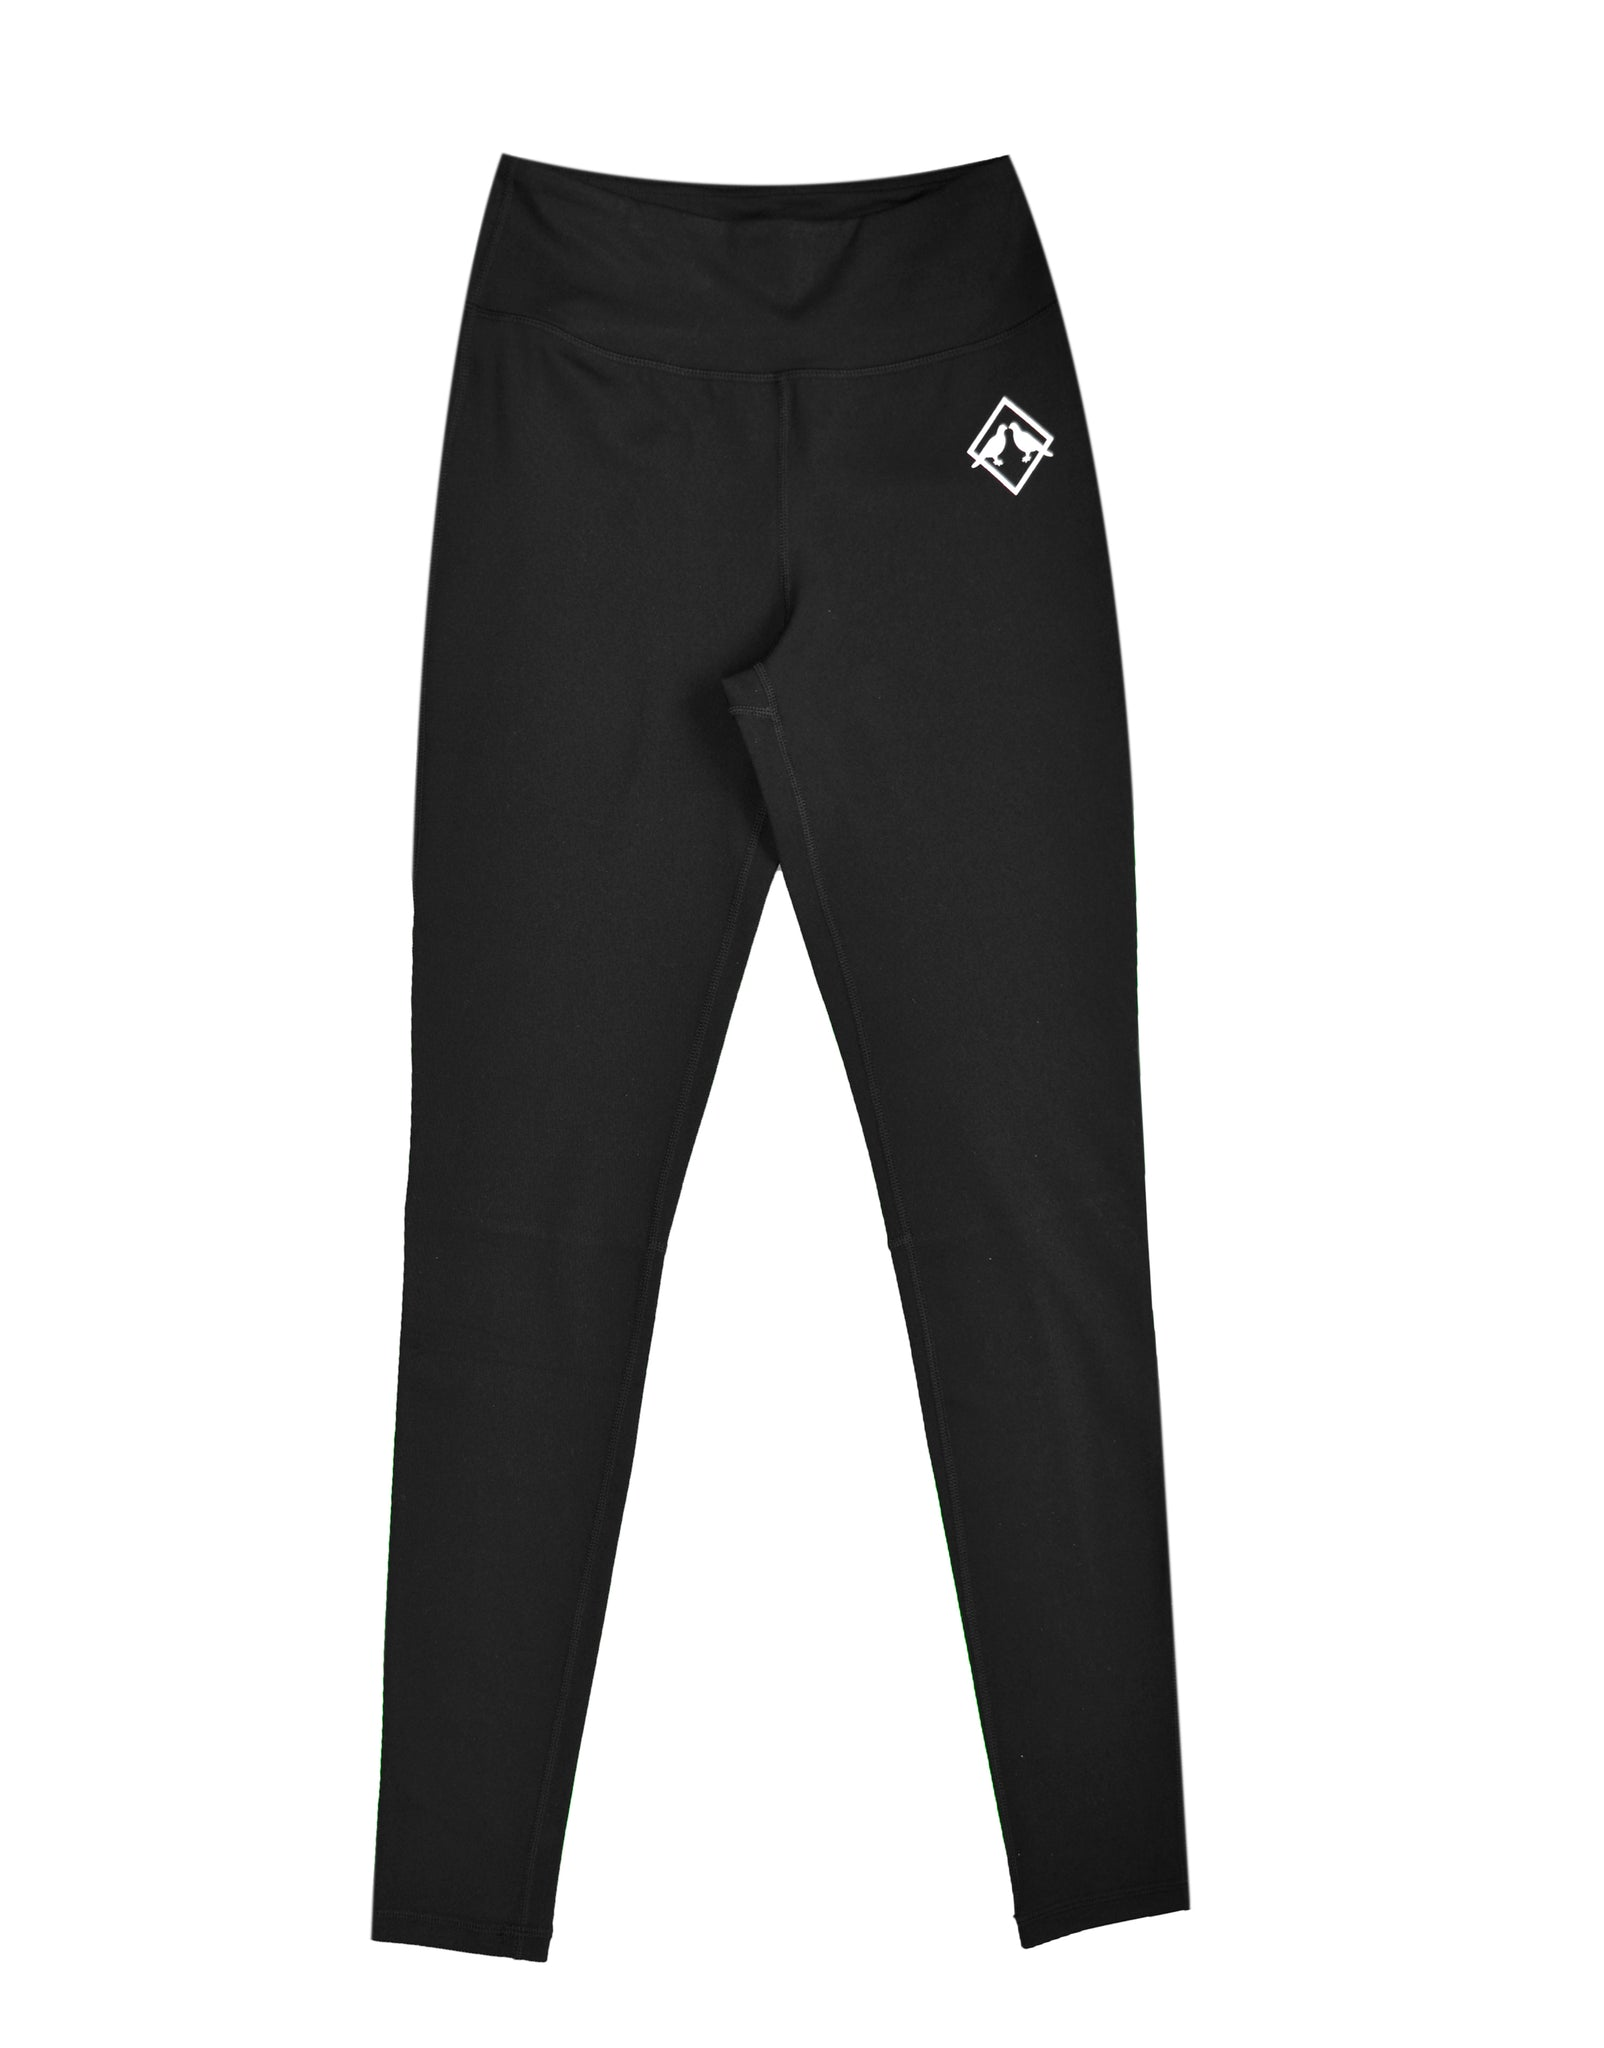 Weekend Pant Black/White (Women)